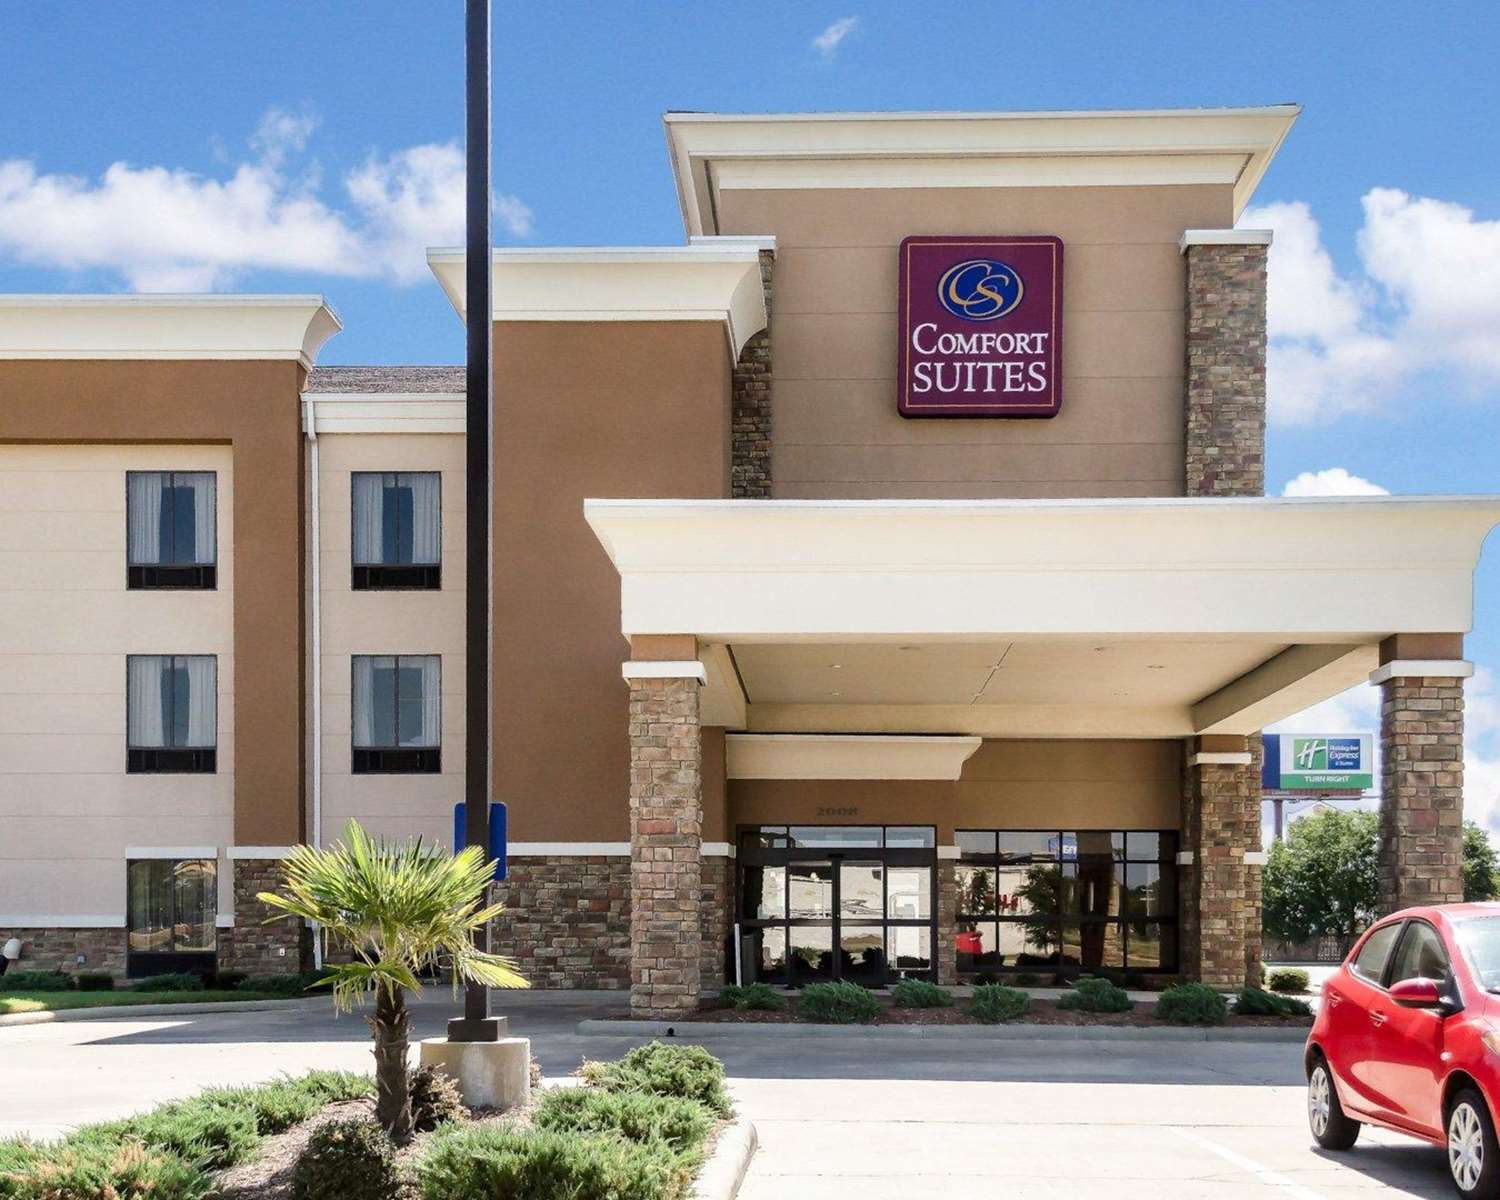 Comfort Suites hotel in Greenwood, MS